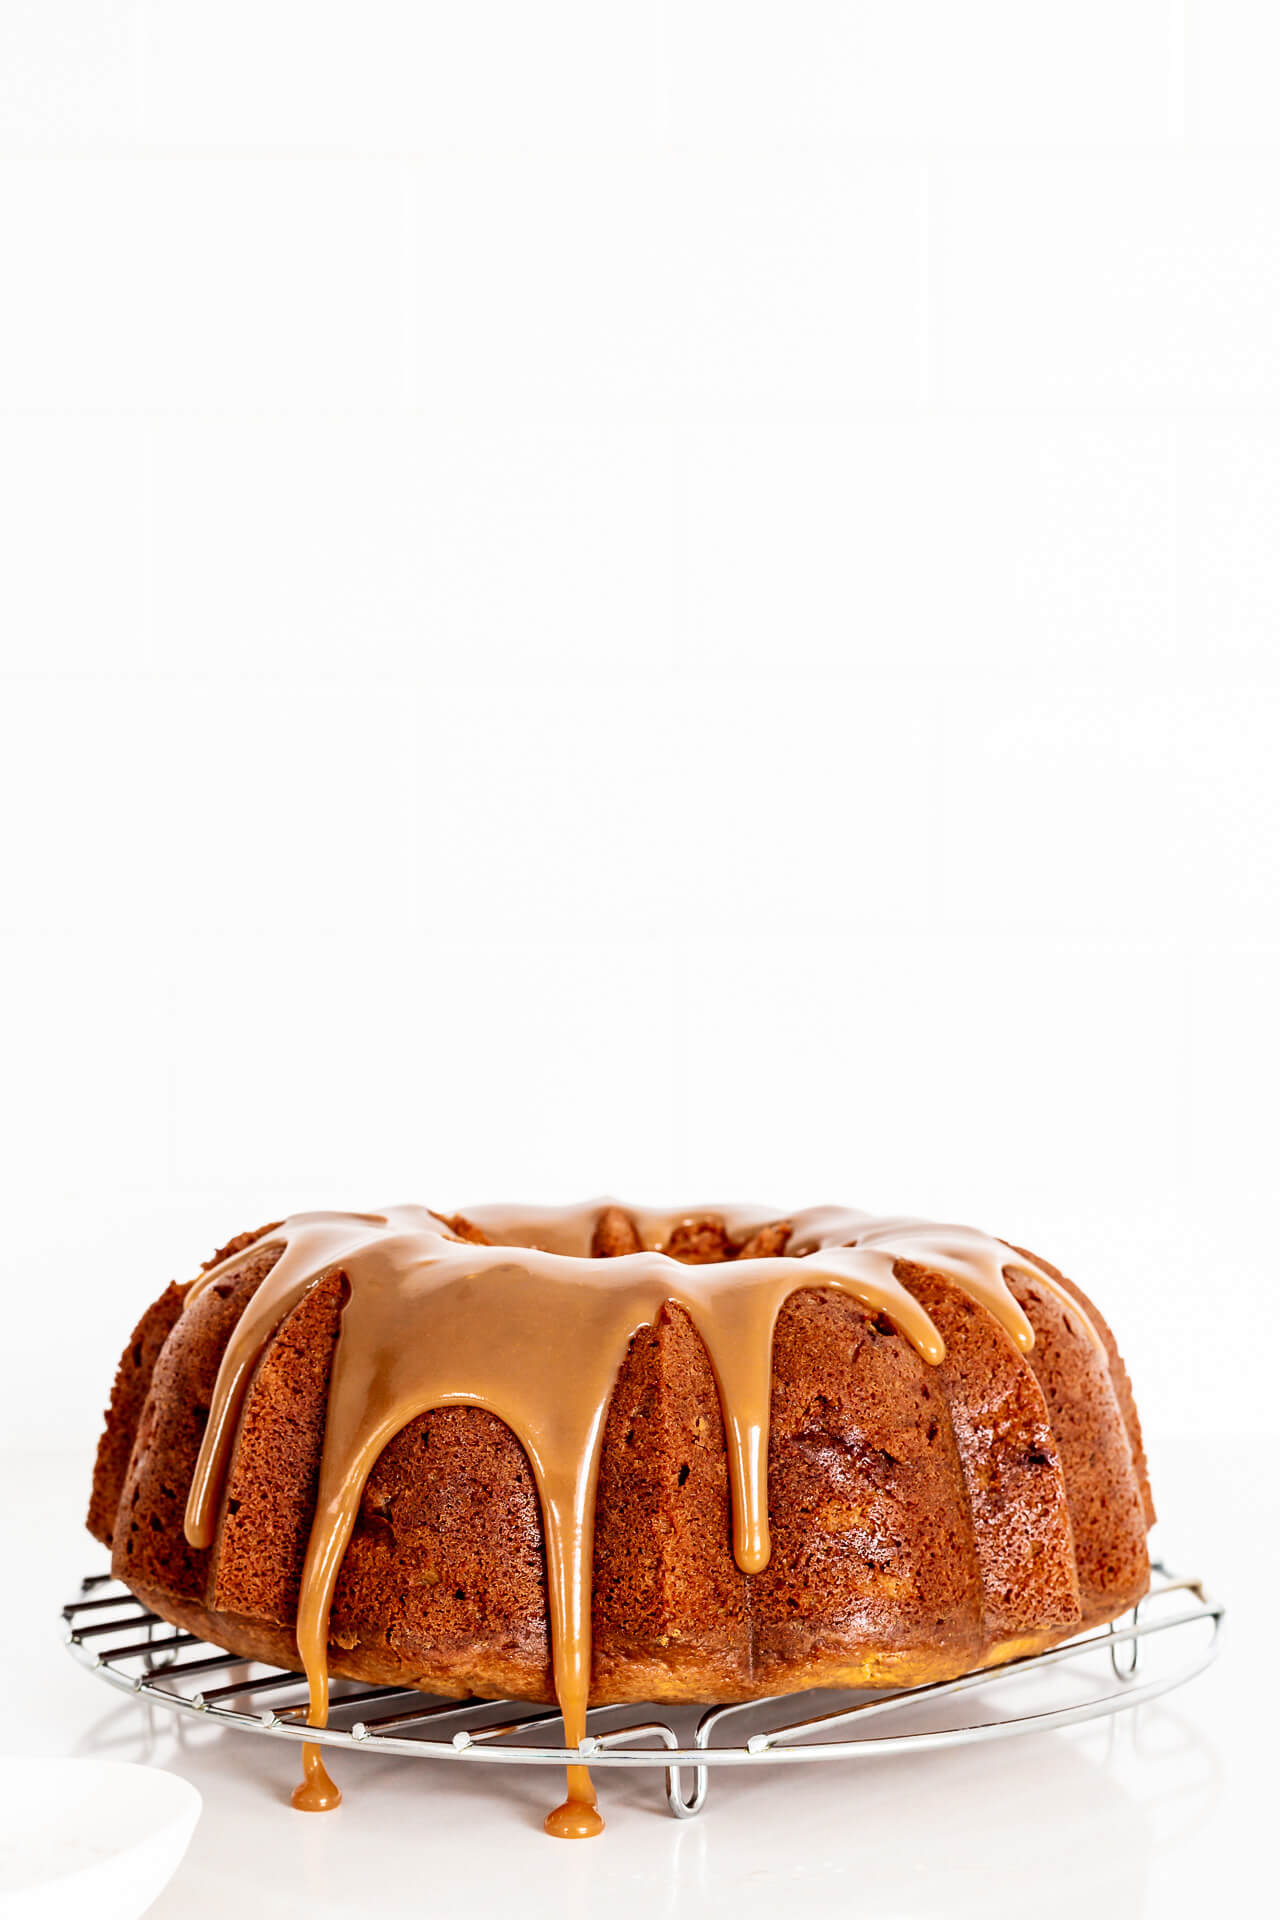 Drizzling salted caramel over a bundt cake set on a wire rack